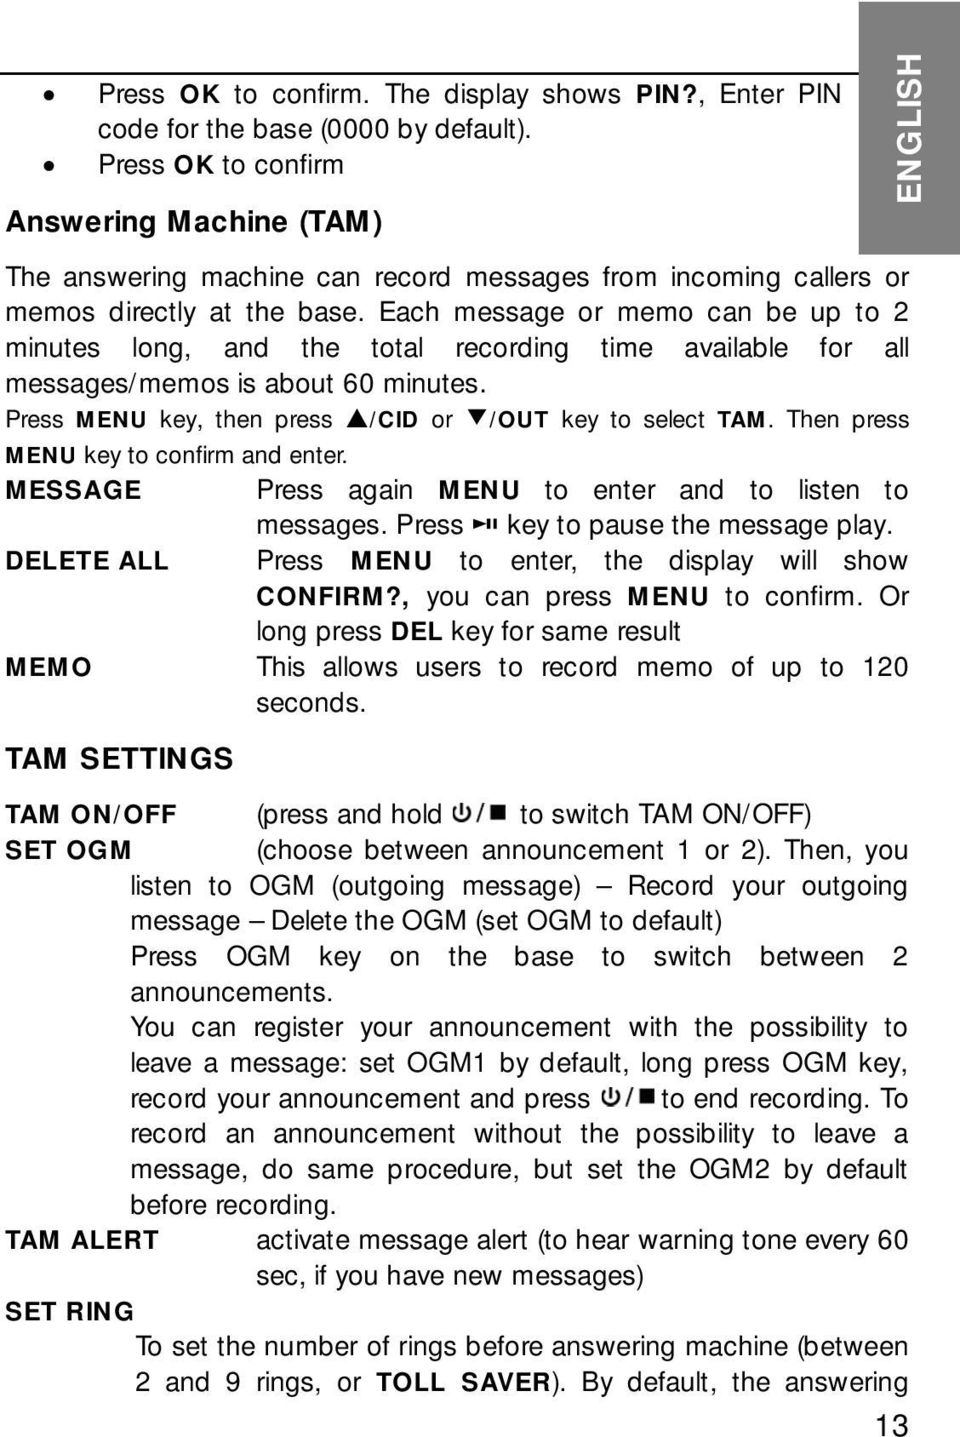 Each message or memo can be up to 2 minutes long, and the total recording time available for all messages/memos is about 60 minutes. Press MENU key, then press /CID or /OUT key to select TAM.